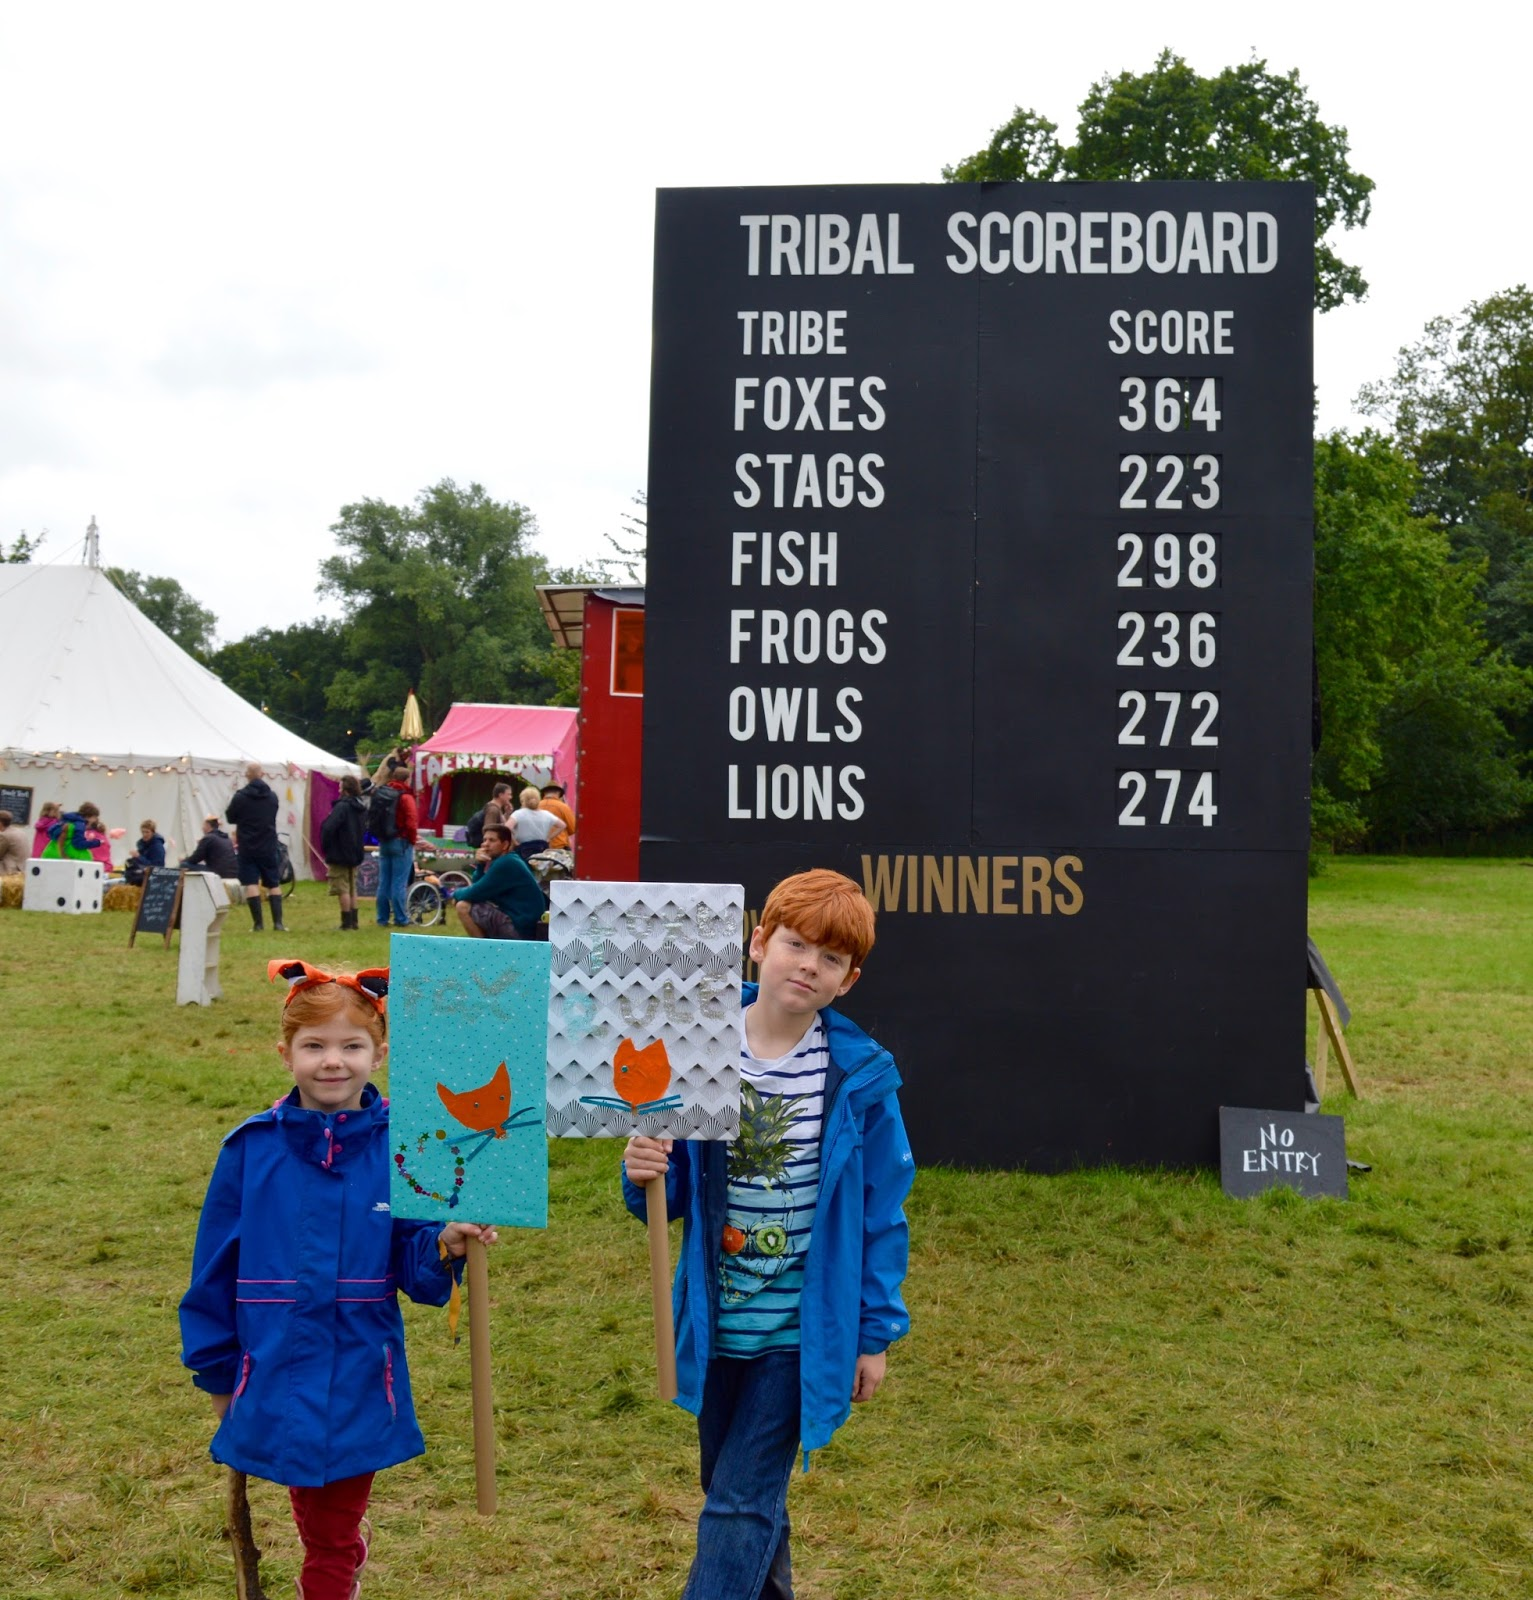 33 Reasons we LOVED the Just So Festival 2016 - Tribal Tournament leaderboard